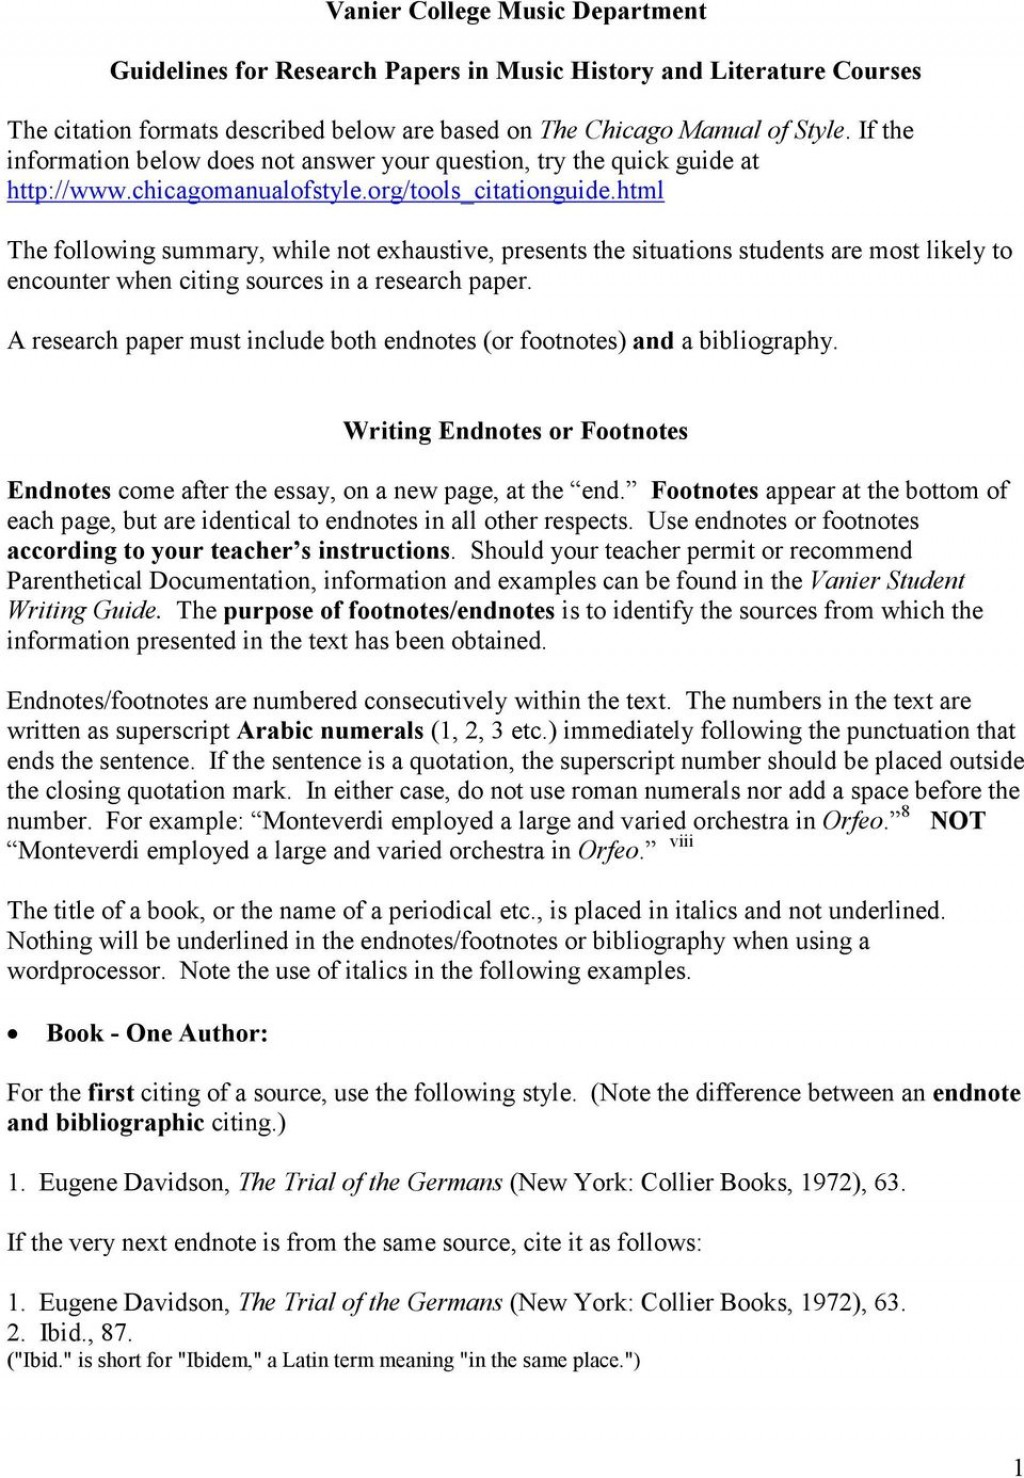 004 Research Paper Page 1 Footnotes Endnotes Formidable In How To Use And A Large